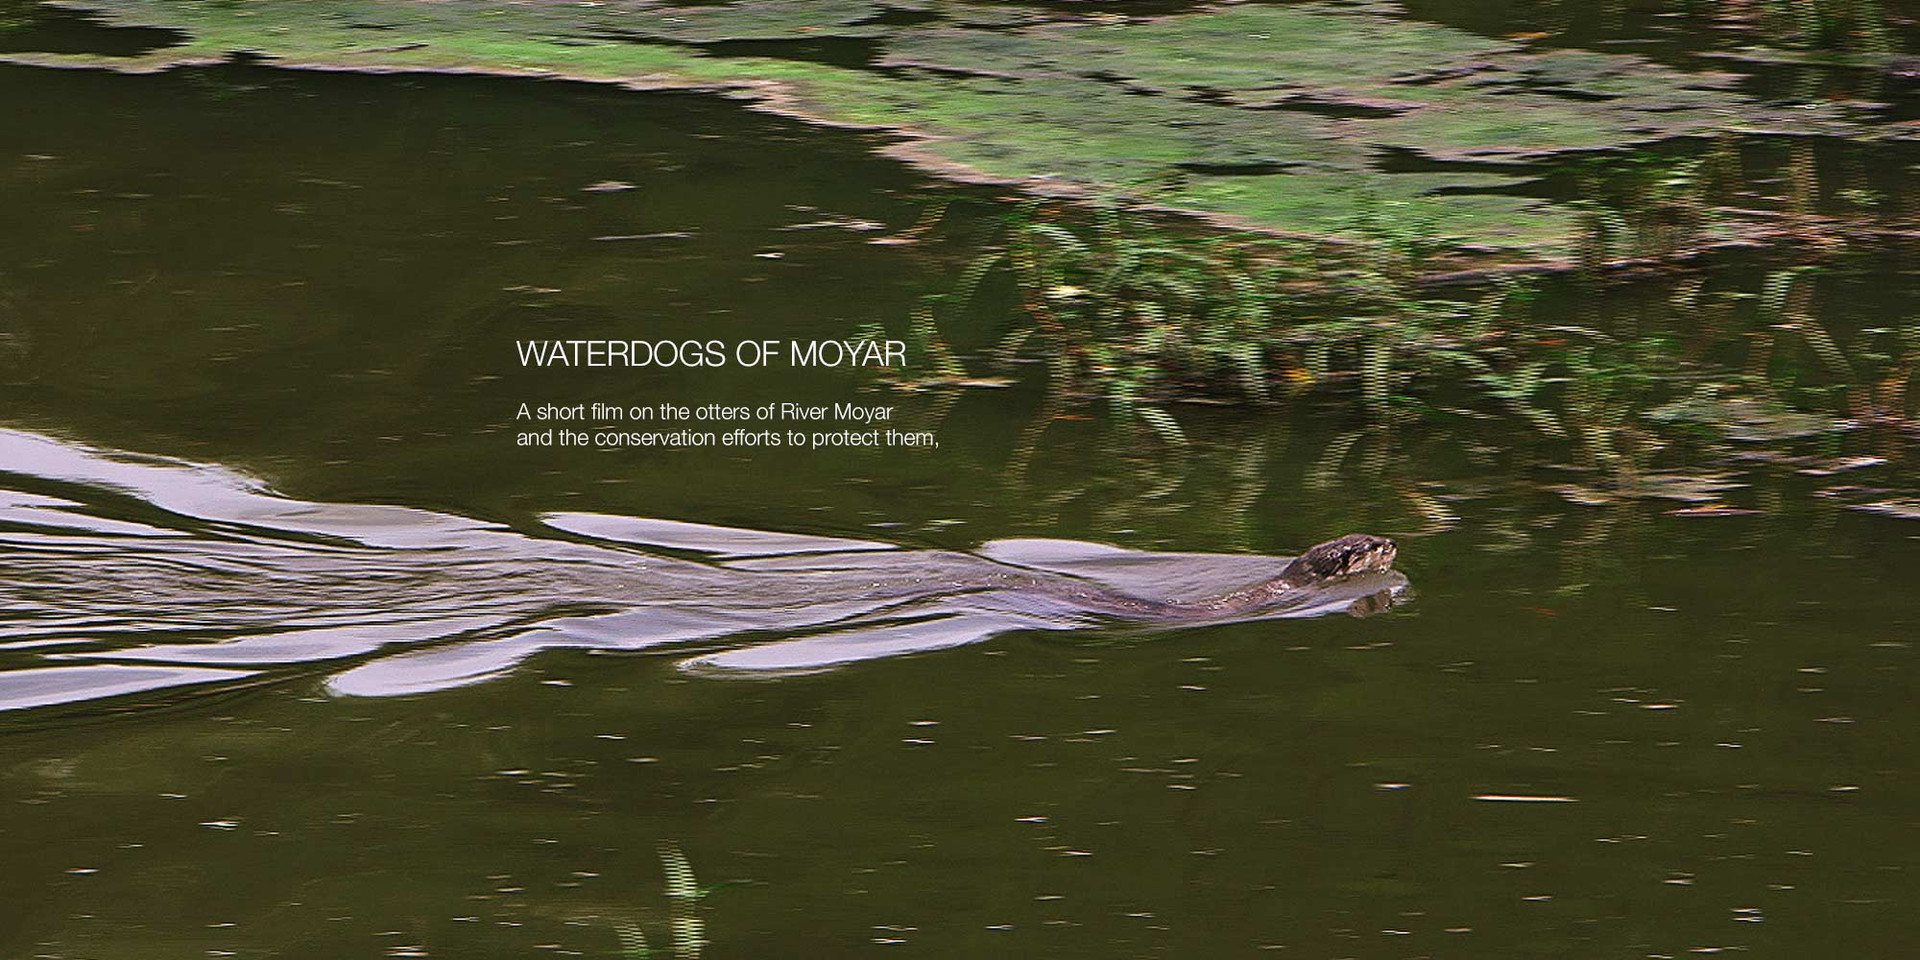 Waterdogs of Moyar